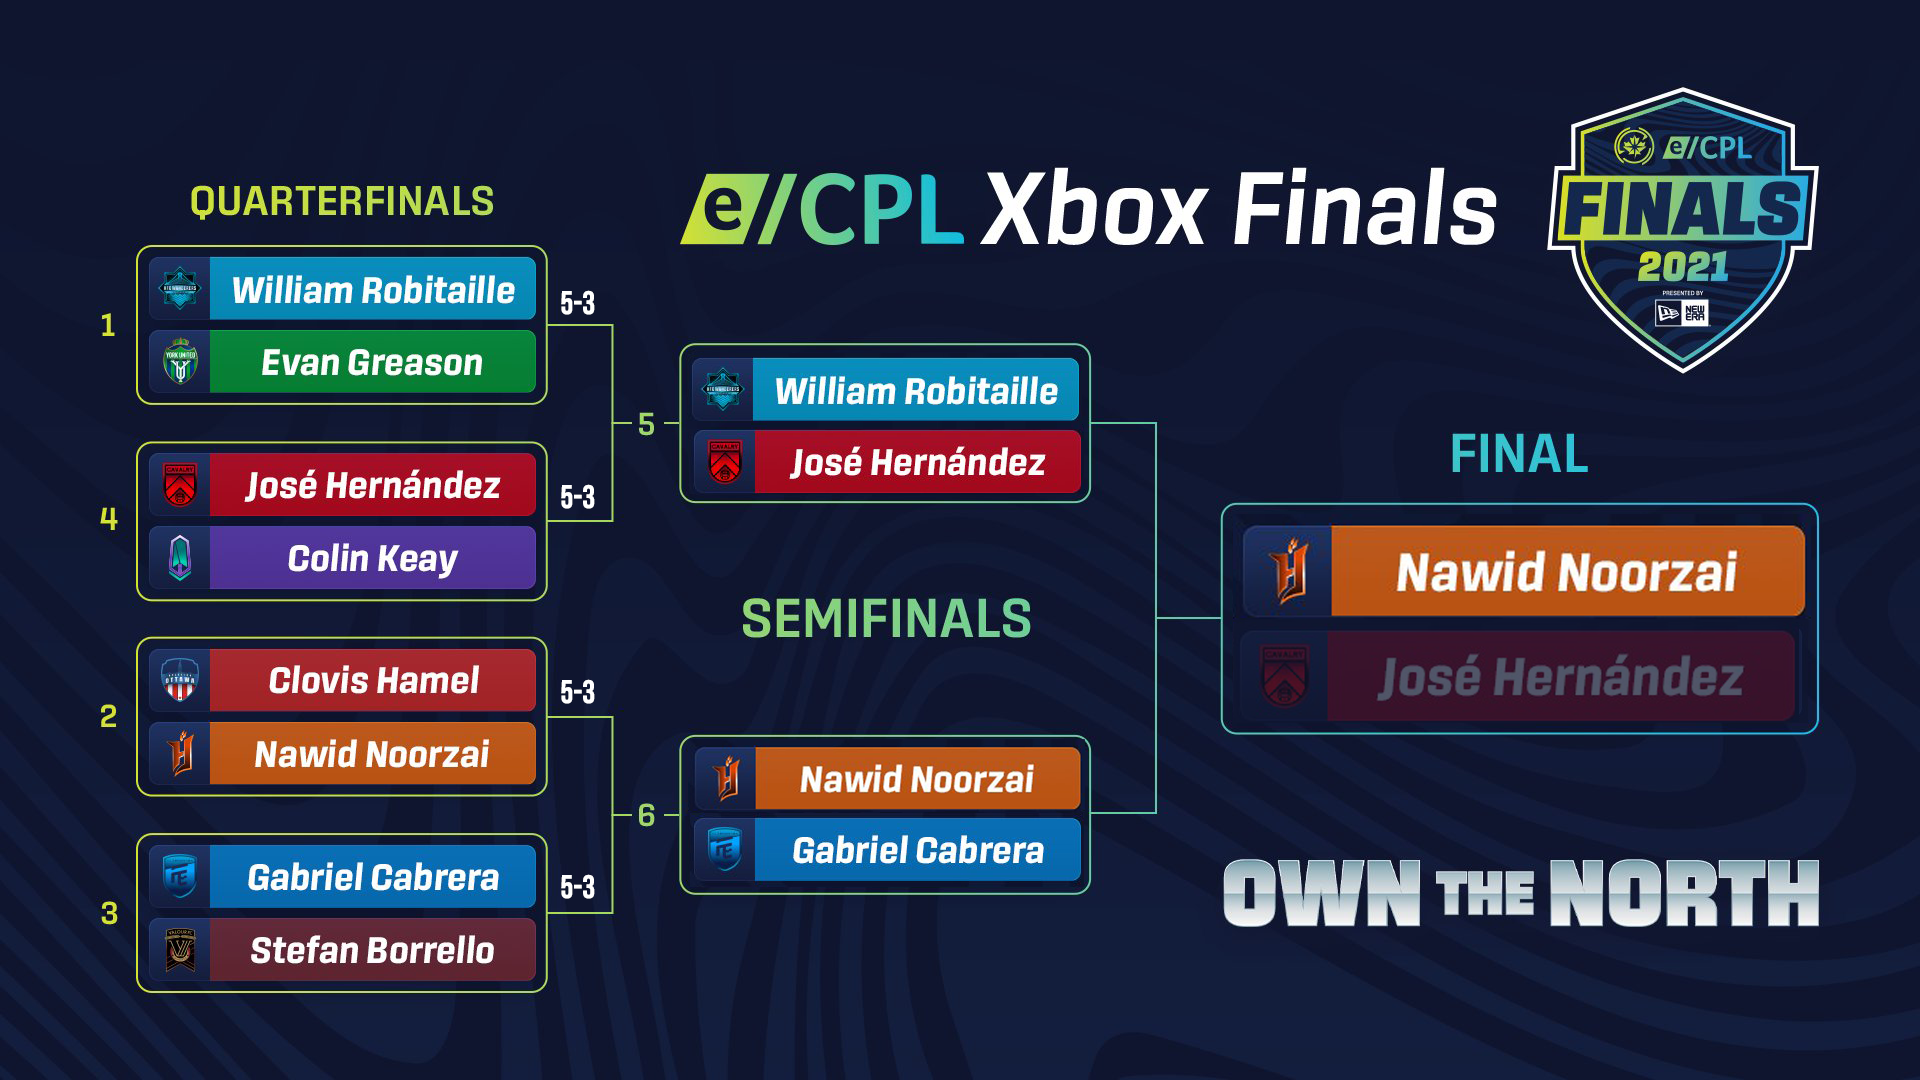 Bracket for the 2021 eCPL Xbox Finals presented by New Era.